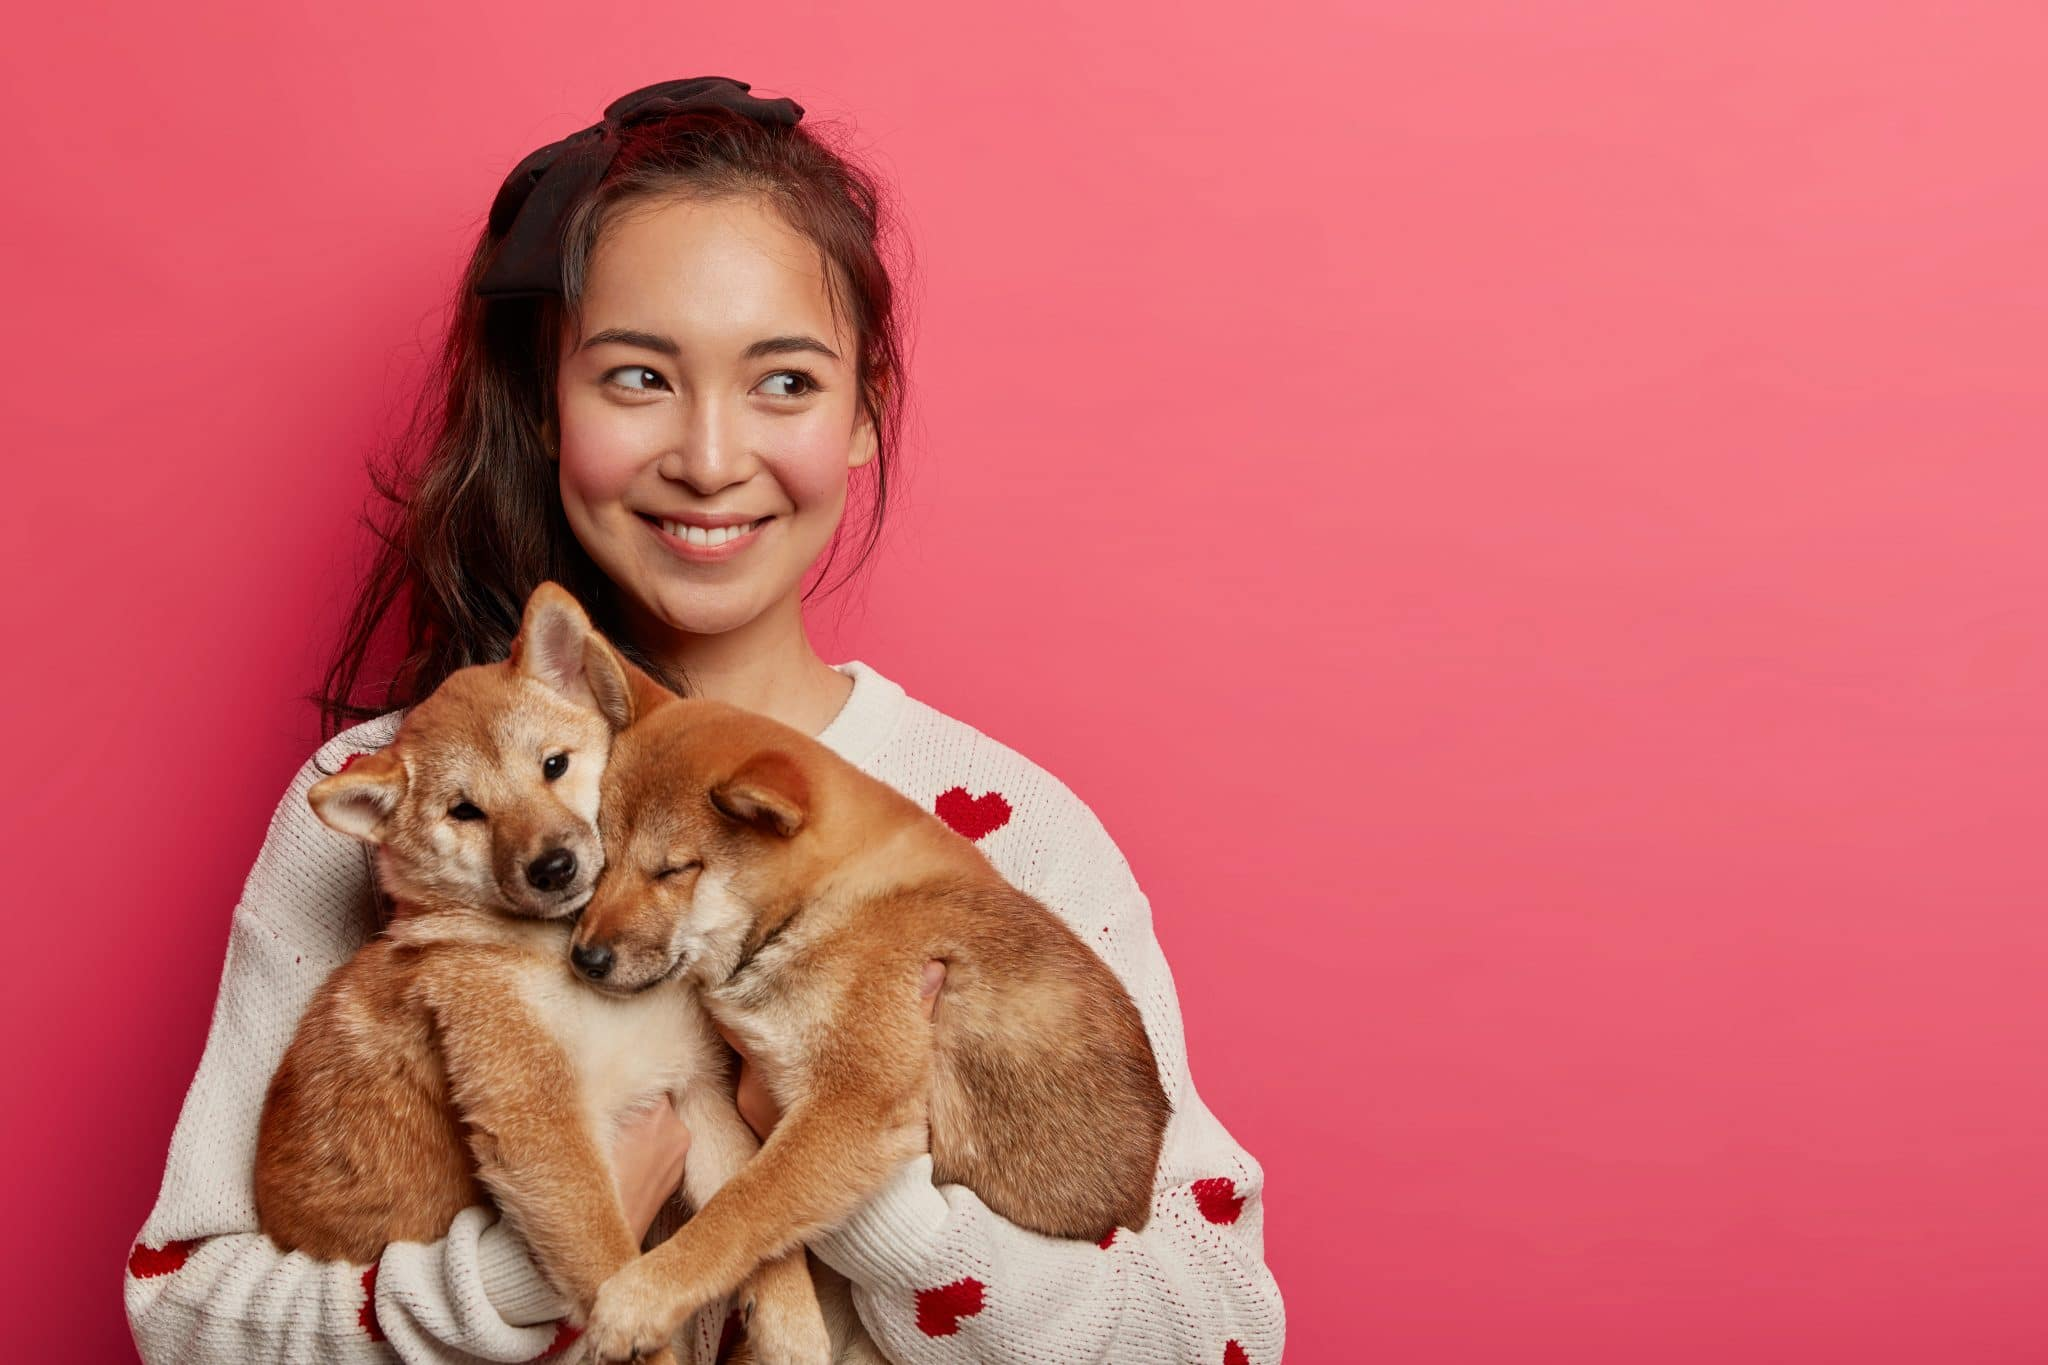 Beautiful brunette woman plays with two shiba inu dogs looks away thinks how to feed pets and teach commands expresses caress isolated on pink background Human and animal connection trust |